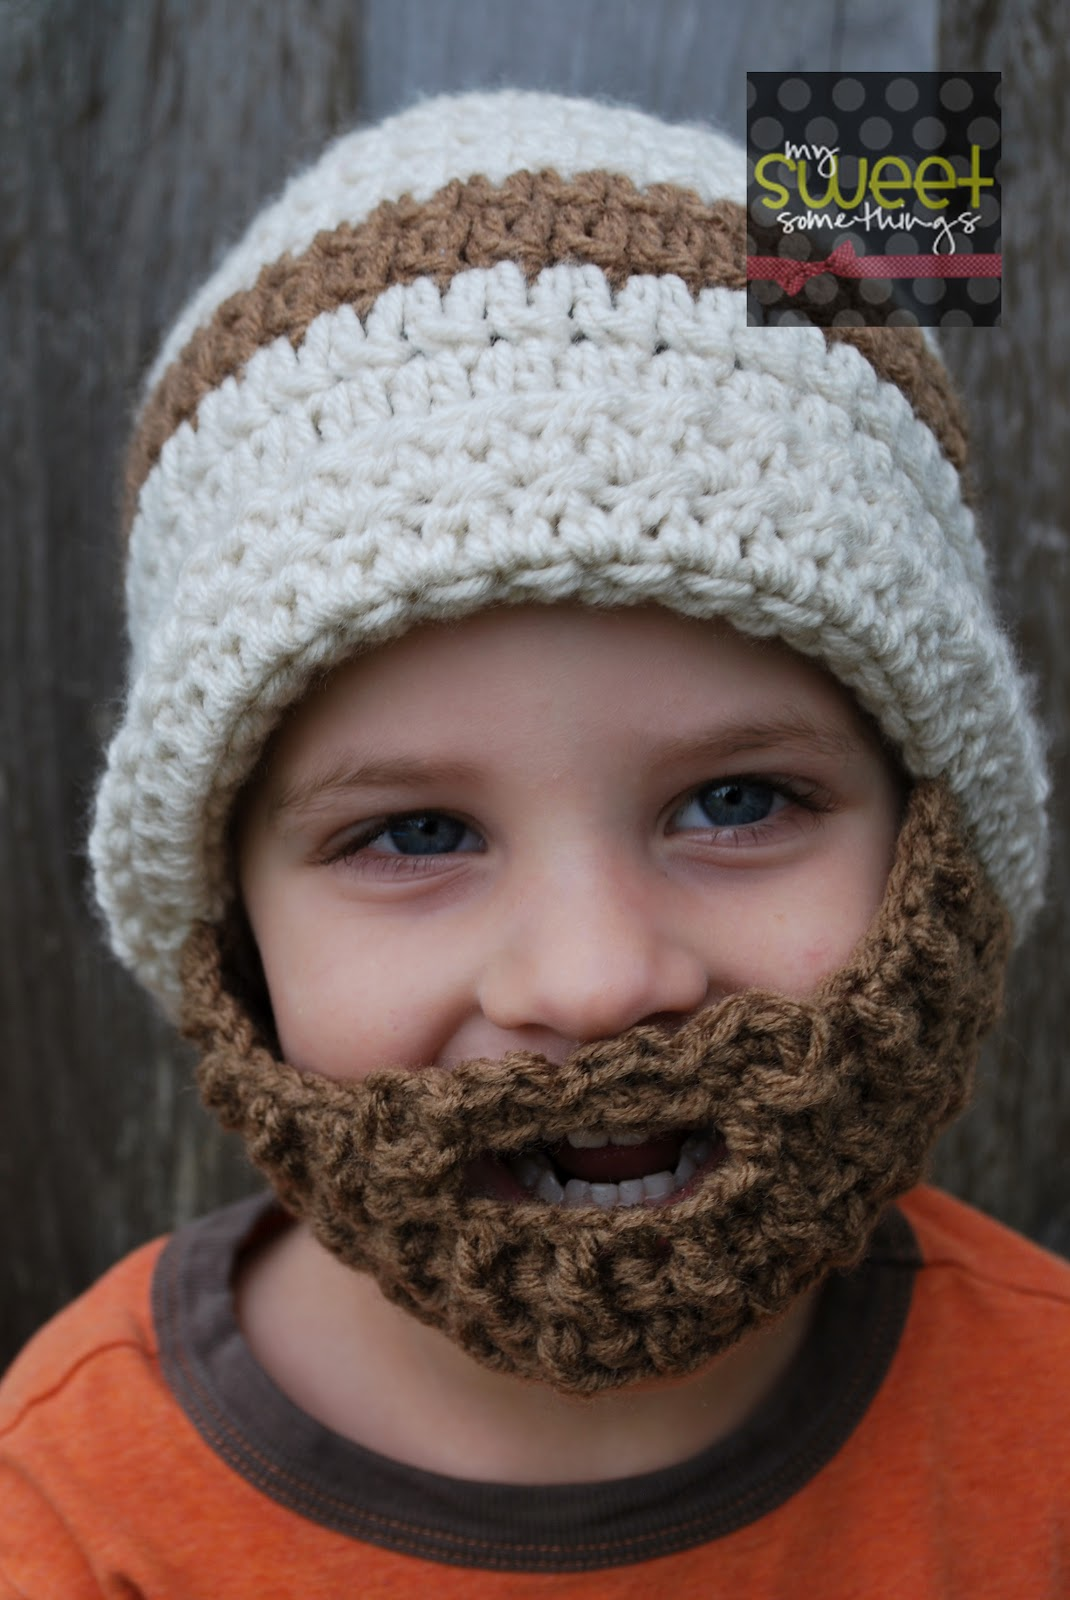 My Sweet Somethings: Bearded Hat for Kids!